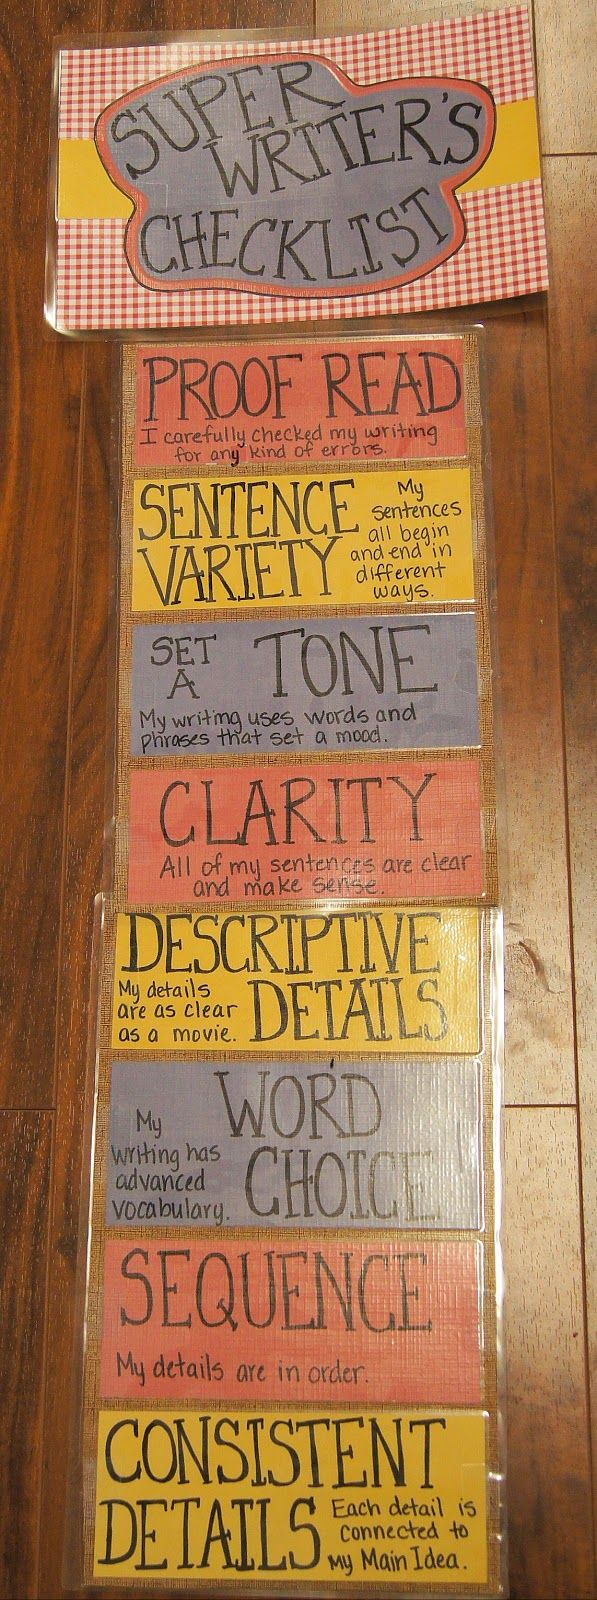 I love this Building Super Writers checklist! Students can make sure they are writing at their very best and that they followed each step. It's important that students include these elements in their writing at all times. (Image only)